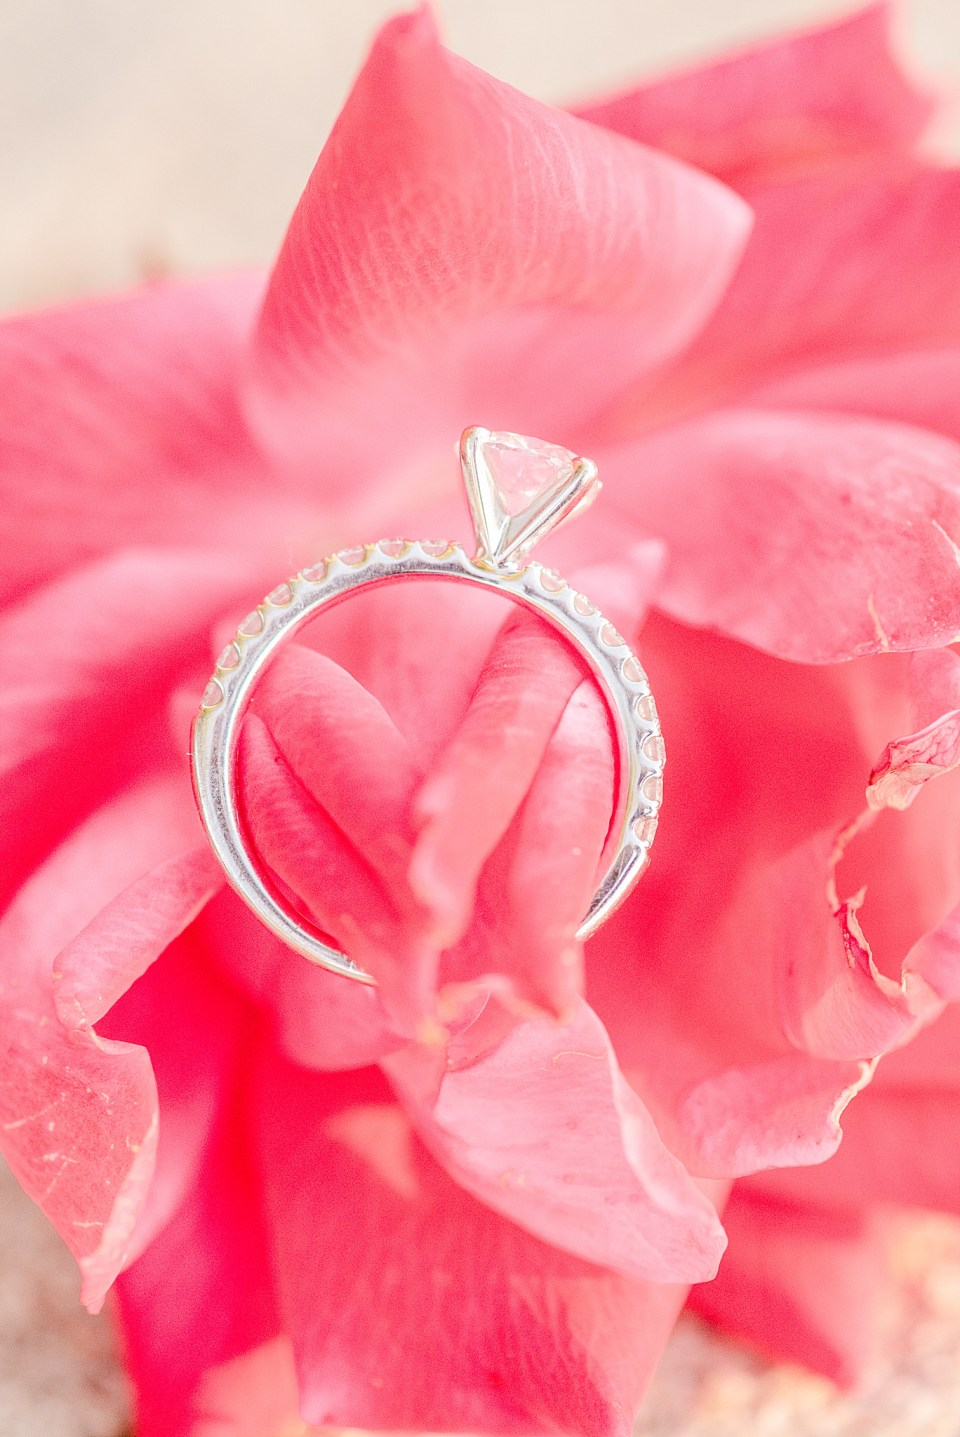 engagement ring rests on pink flowers